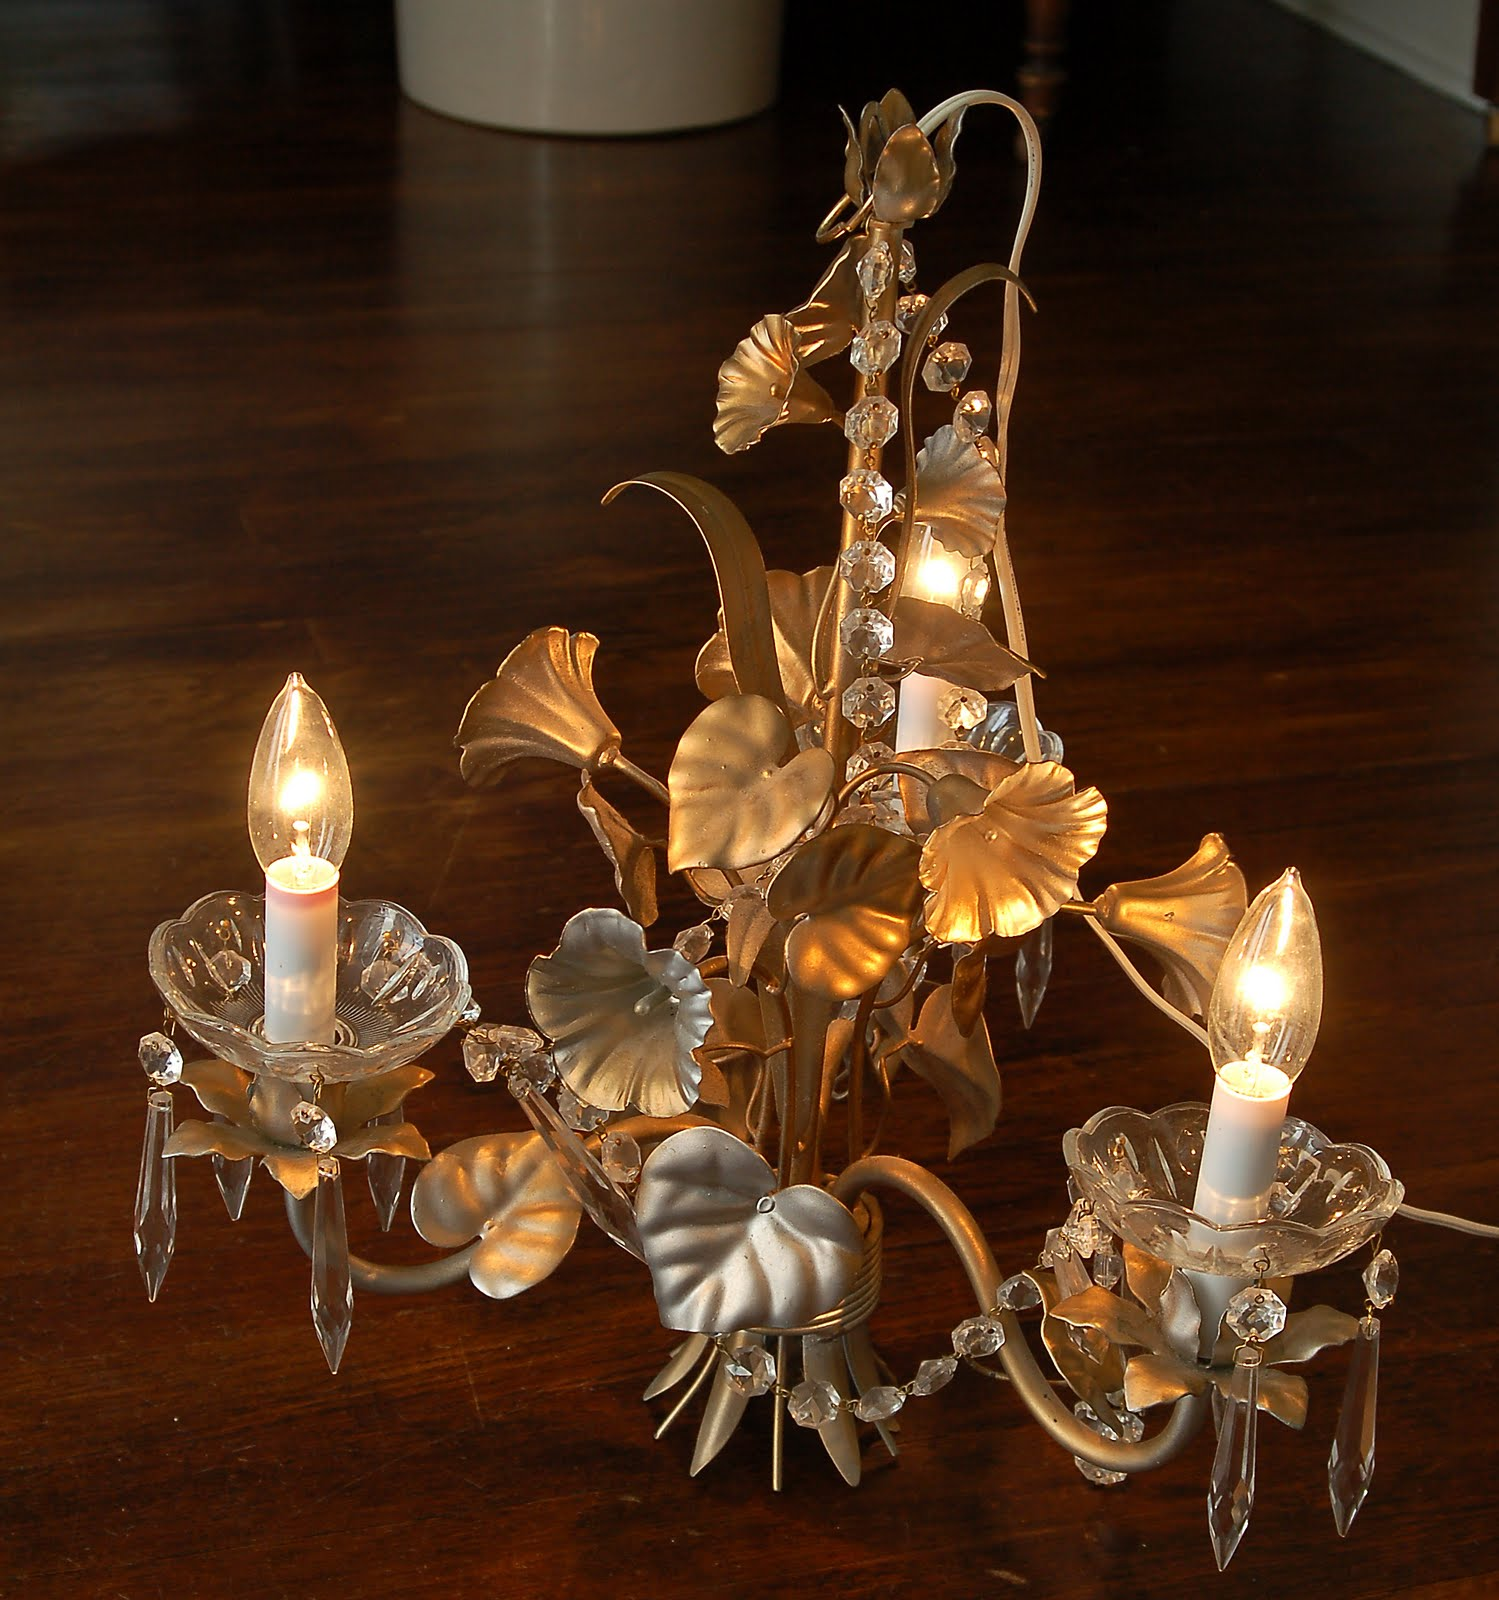 Hand painted tole chandelier makeover miss mustard seed it was spray painted a tacky gold and the previous owner stuck some crystal cups and swags on the candles it was very strange but i could see the arubaitofo Choice Image